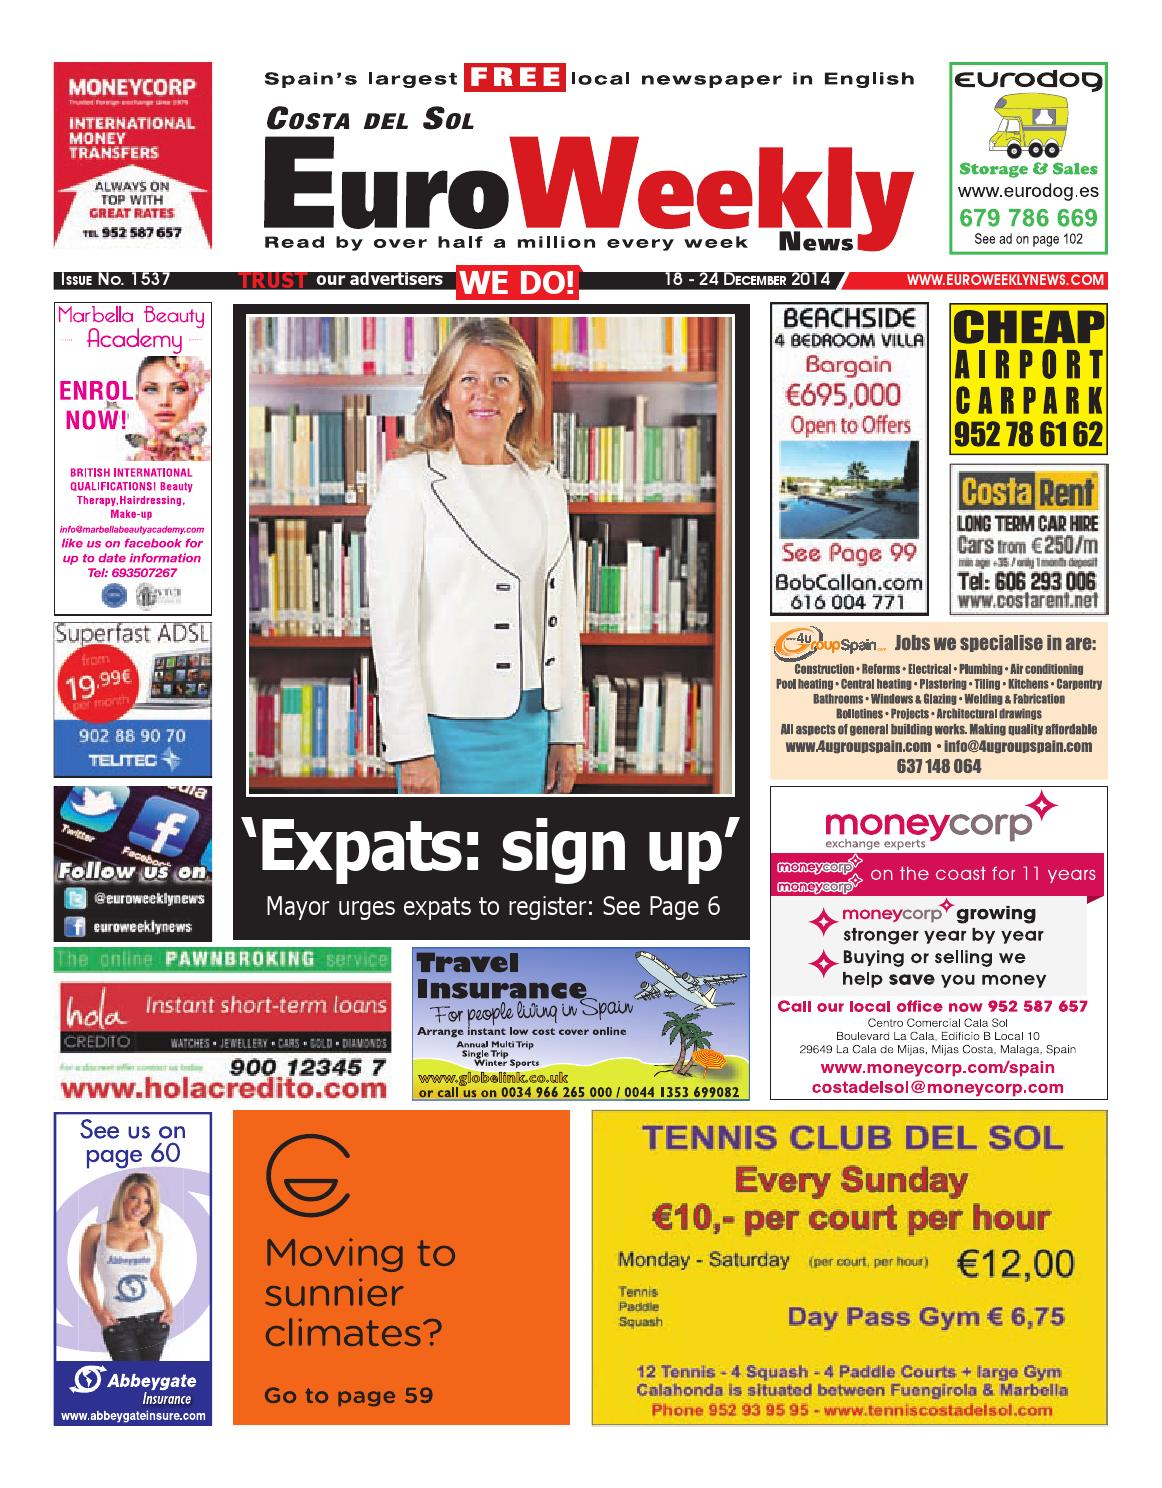 e17a34af2103 Euro Weekly News - Costa del Sol 18 - 24 December 2014 Issue 1537 by Euro  Weekly News Media S.A. - issuu